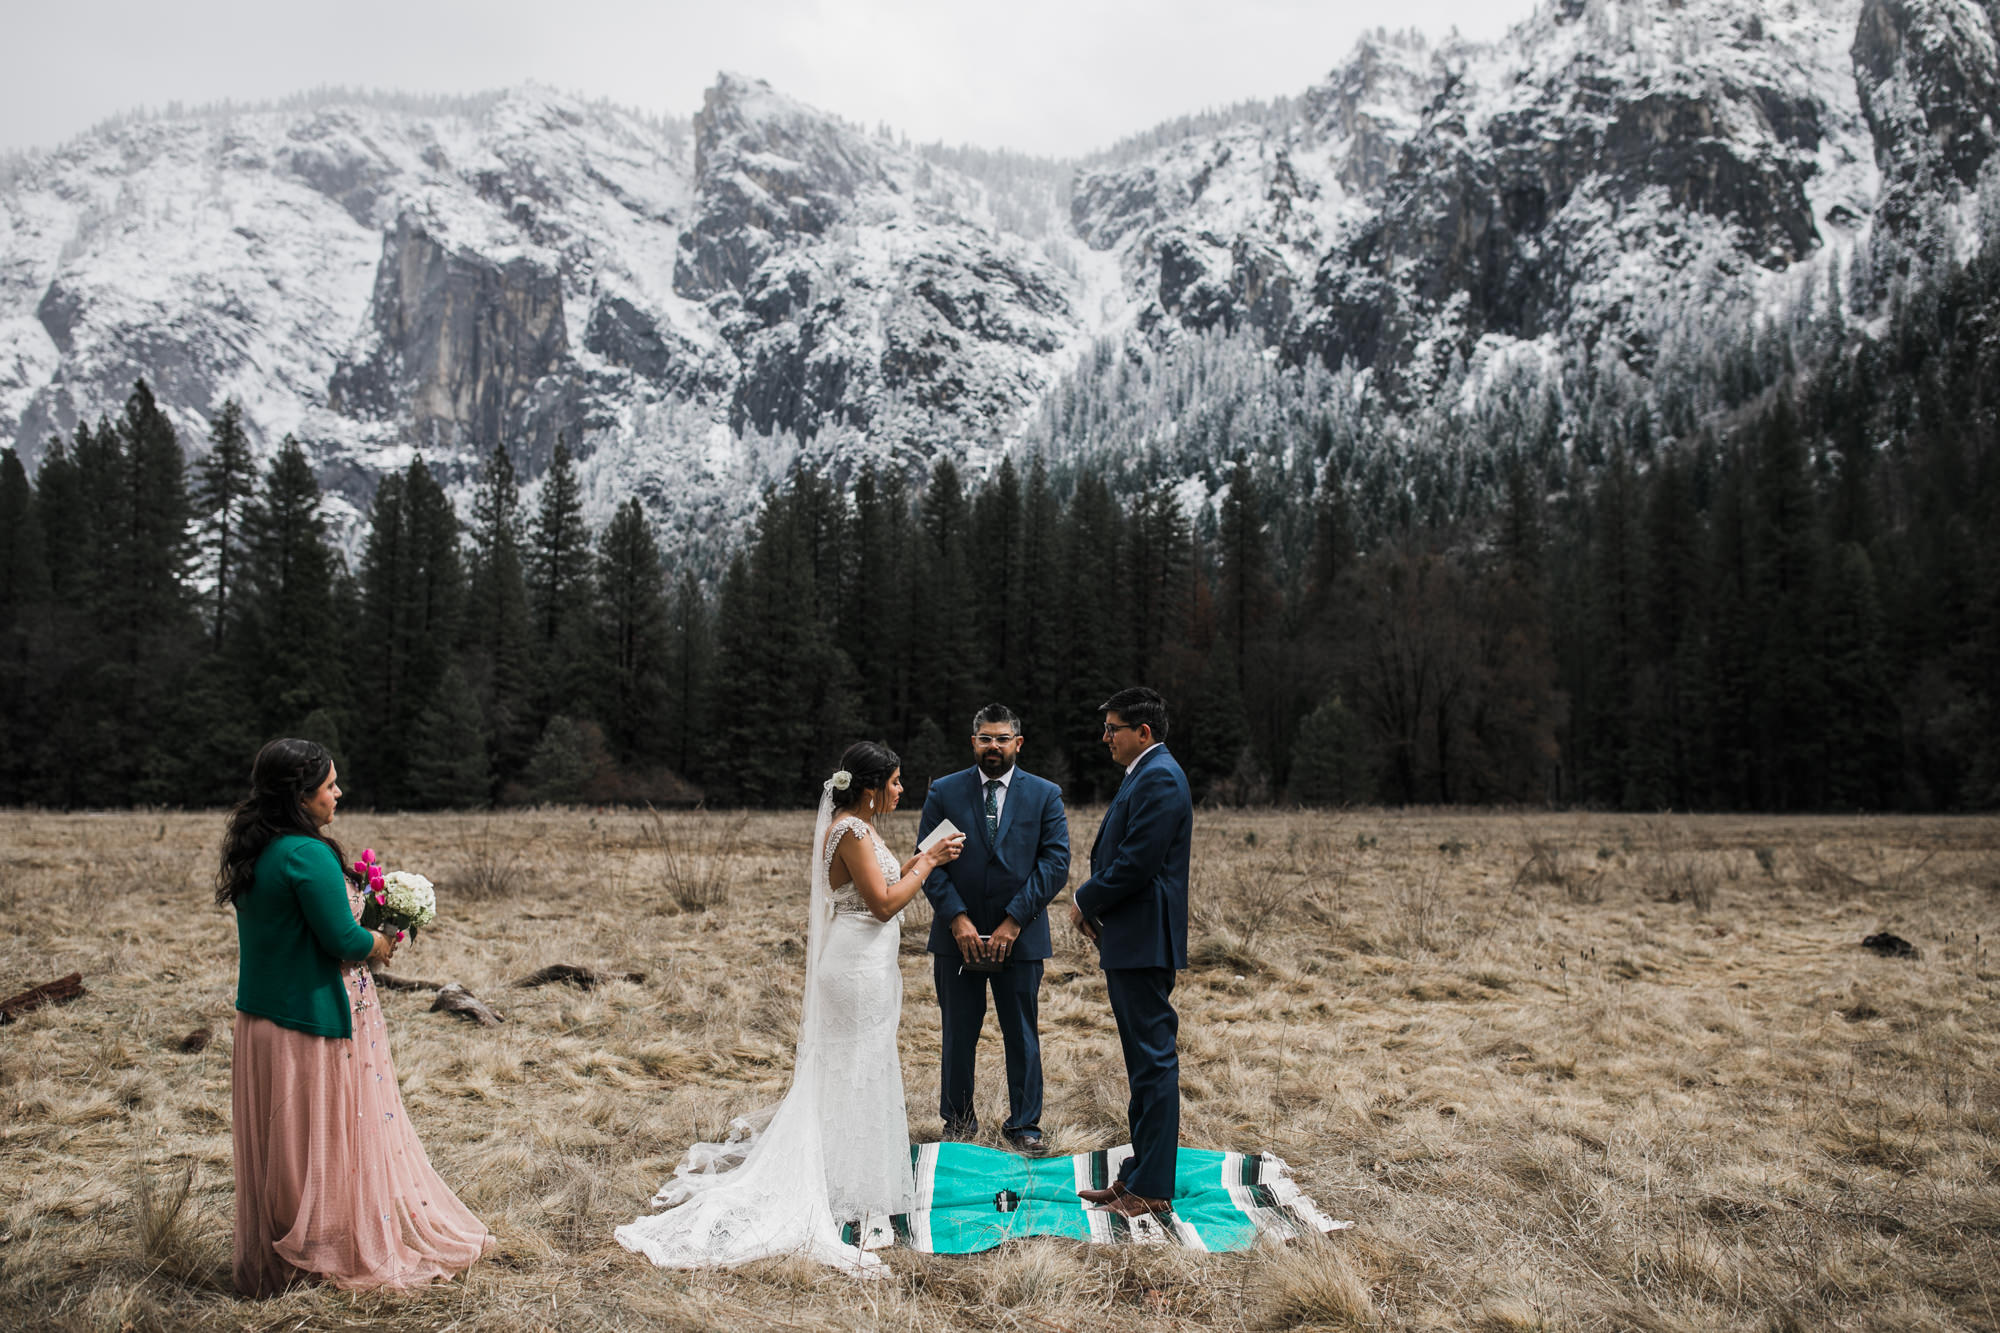 elopement in yosemite national park surrounded by snowy mountains, intimate wedding day inspiration